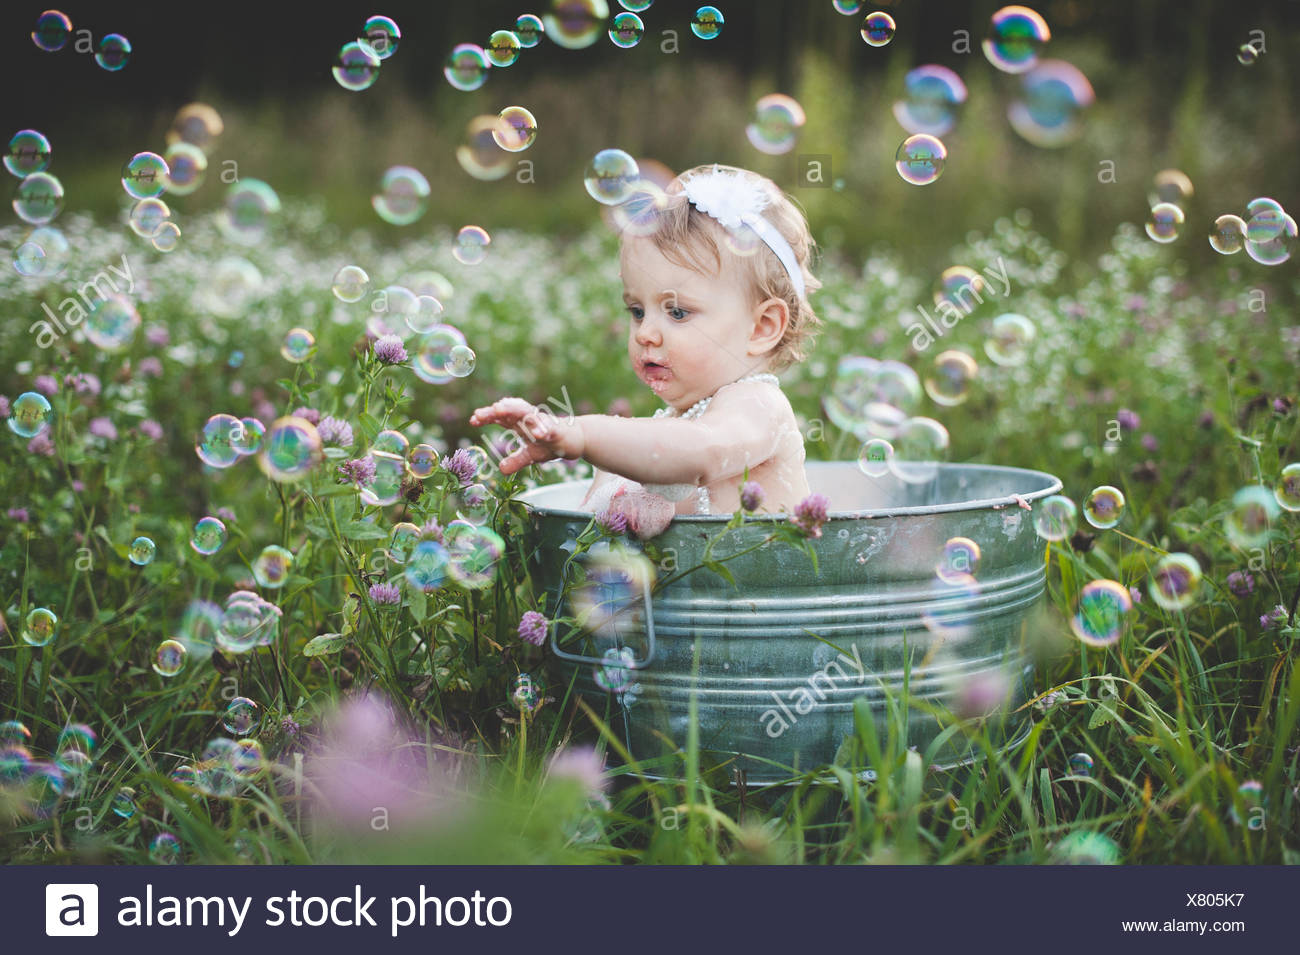 Baby girl in tin bathtub in meadow reaching for floating bubbles Stock Photo